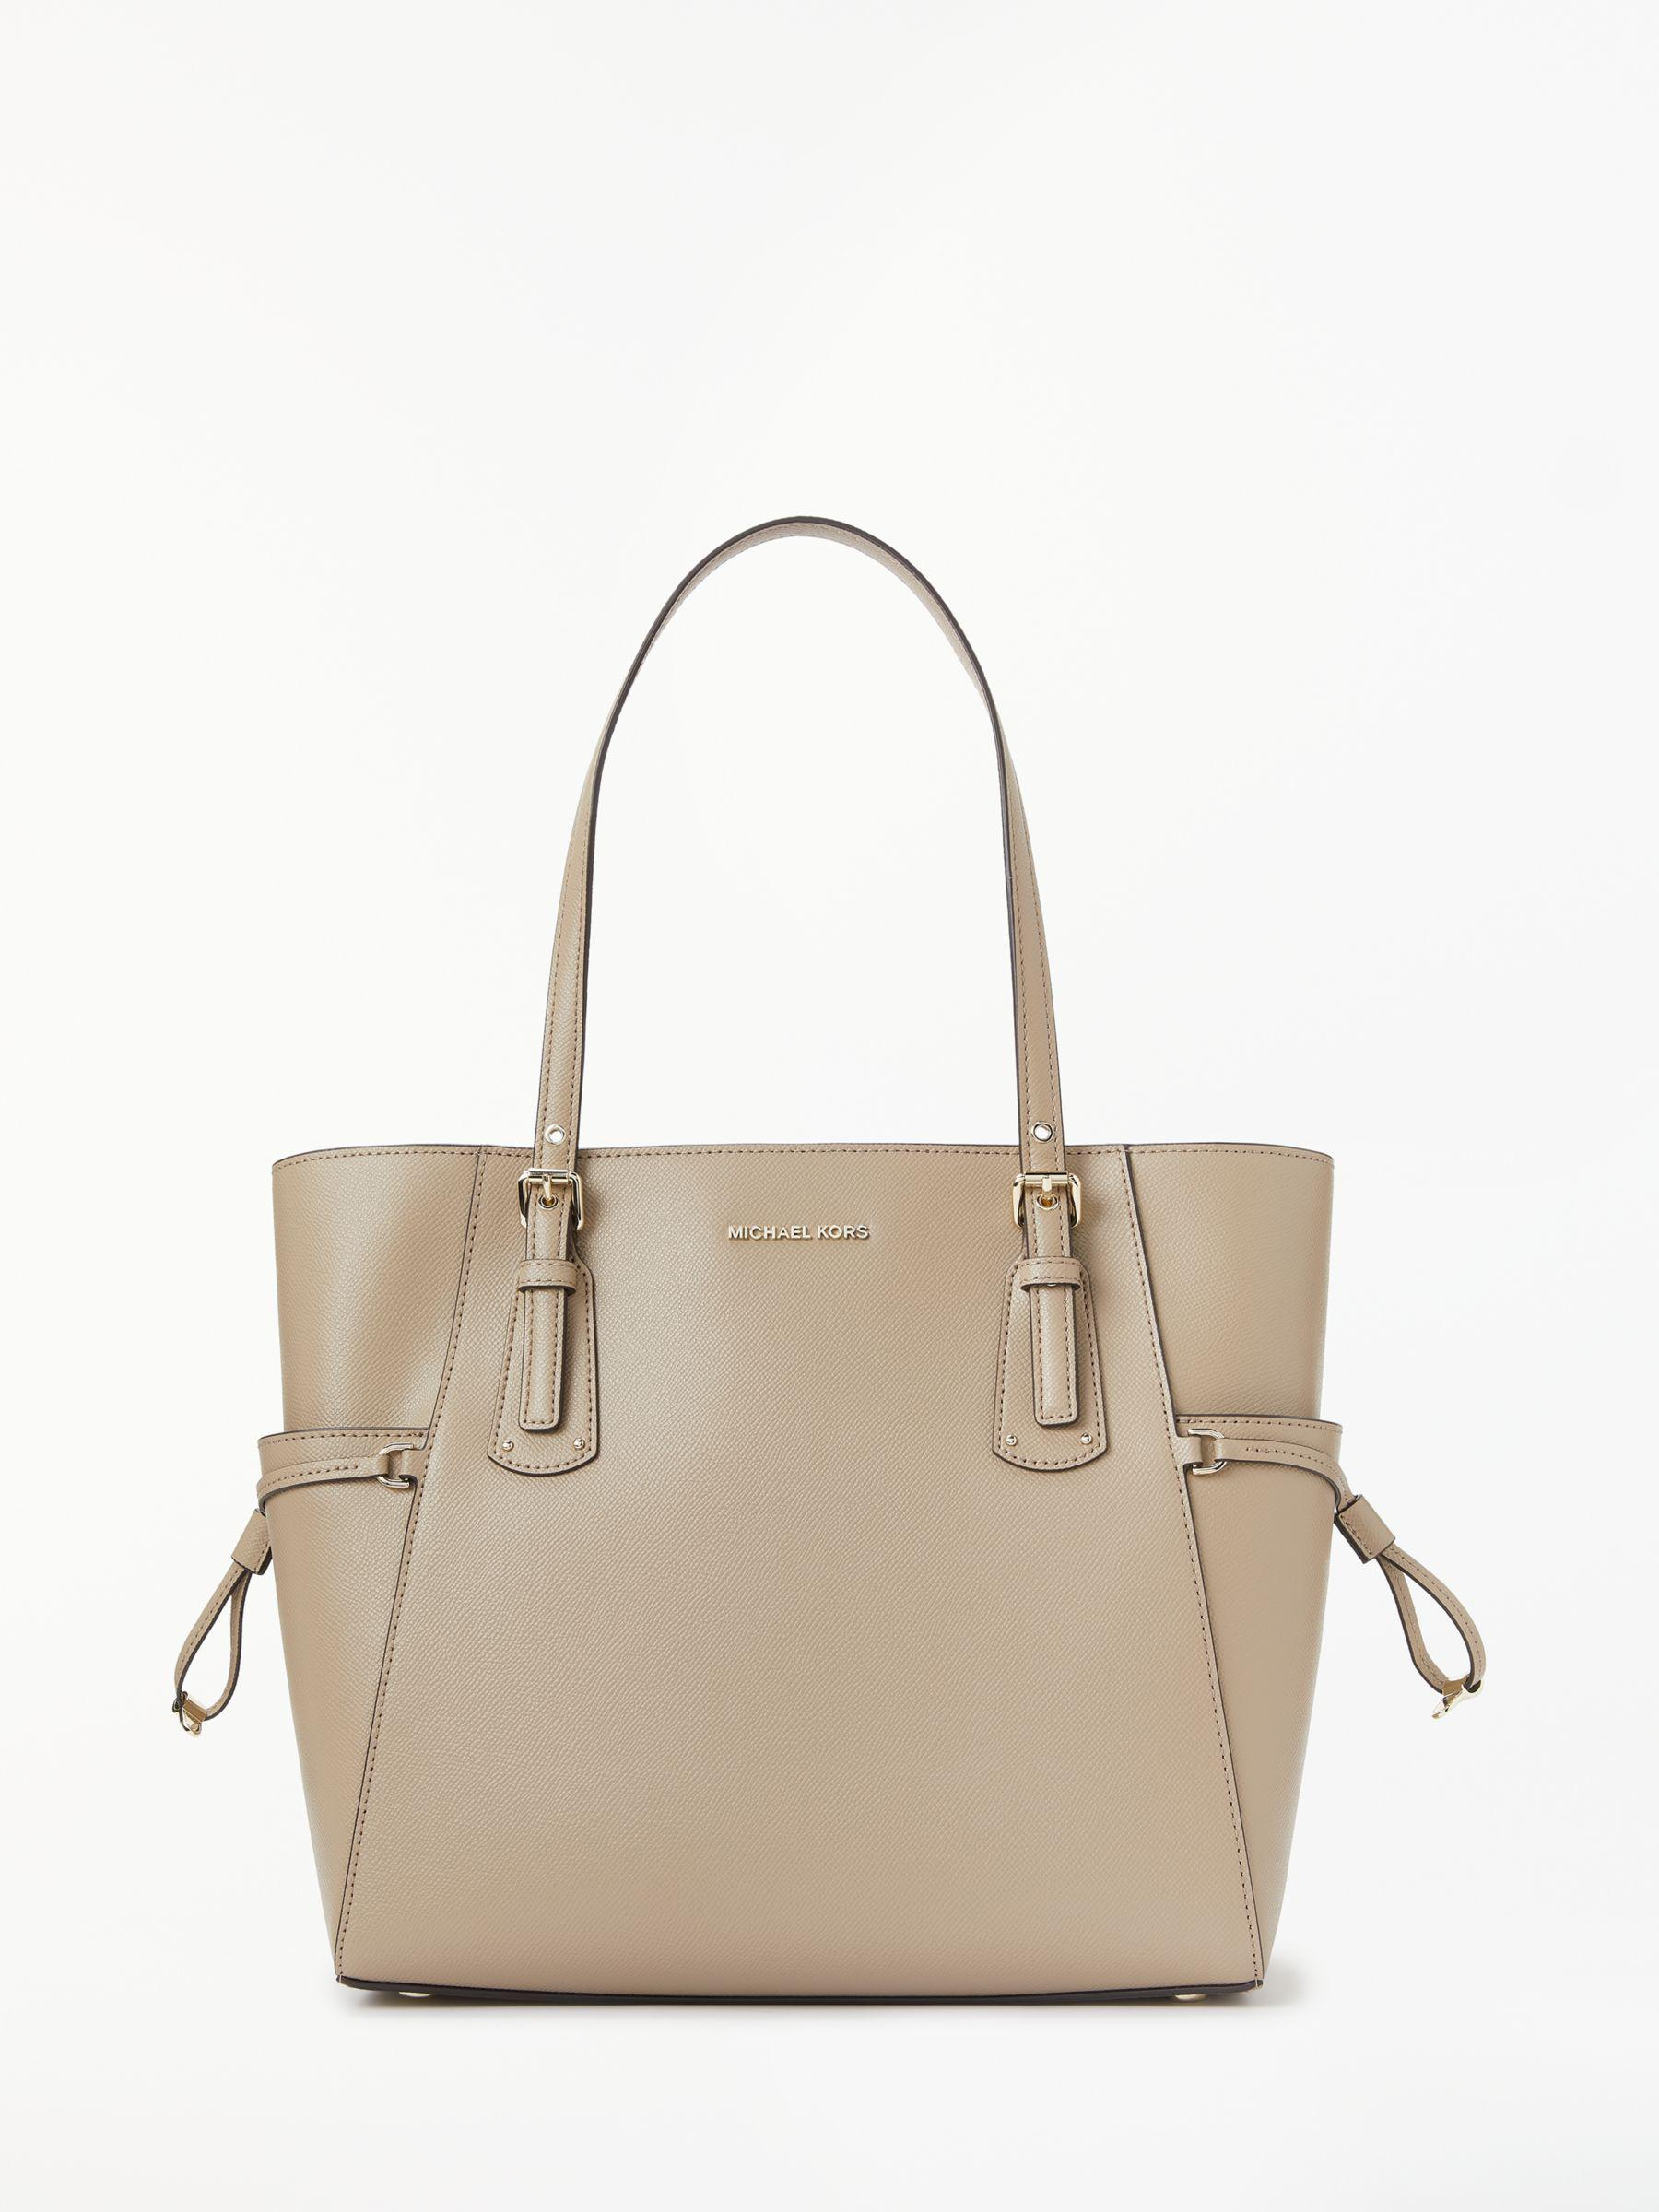 9e3537b9e44c Michael Kors - Multicolor Michael Voyager East West Leather Tote Bag -  Lyst. View fullscreen